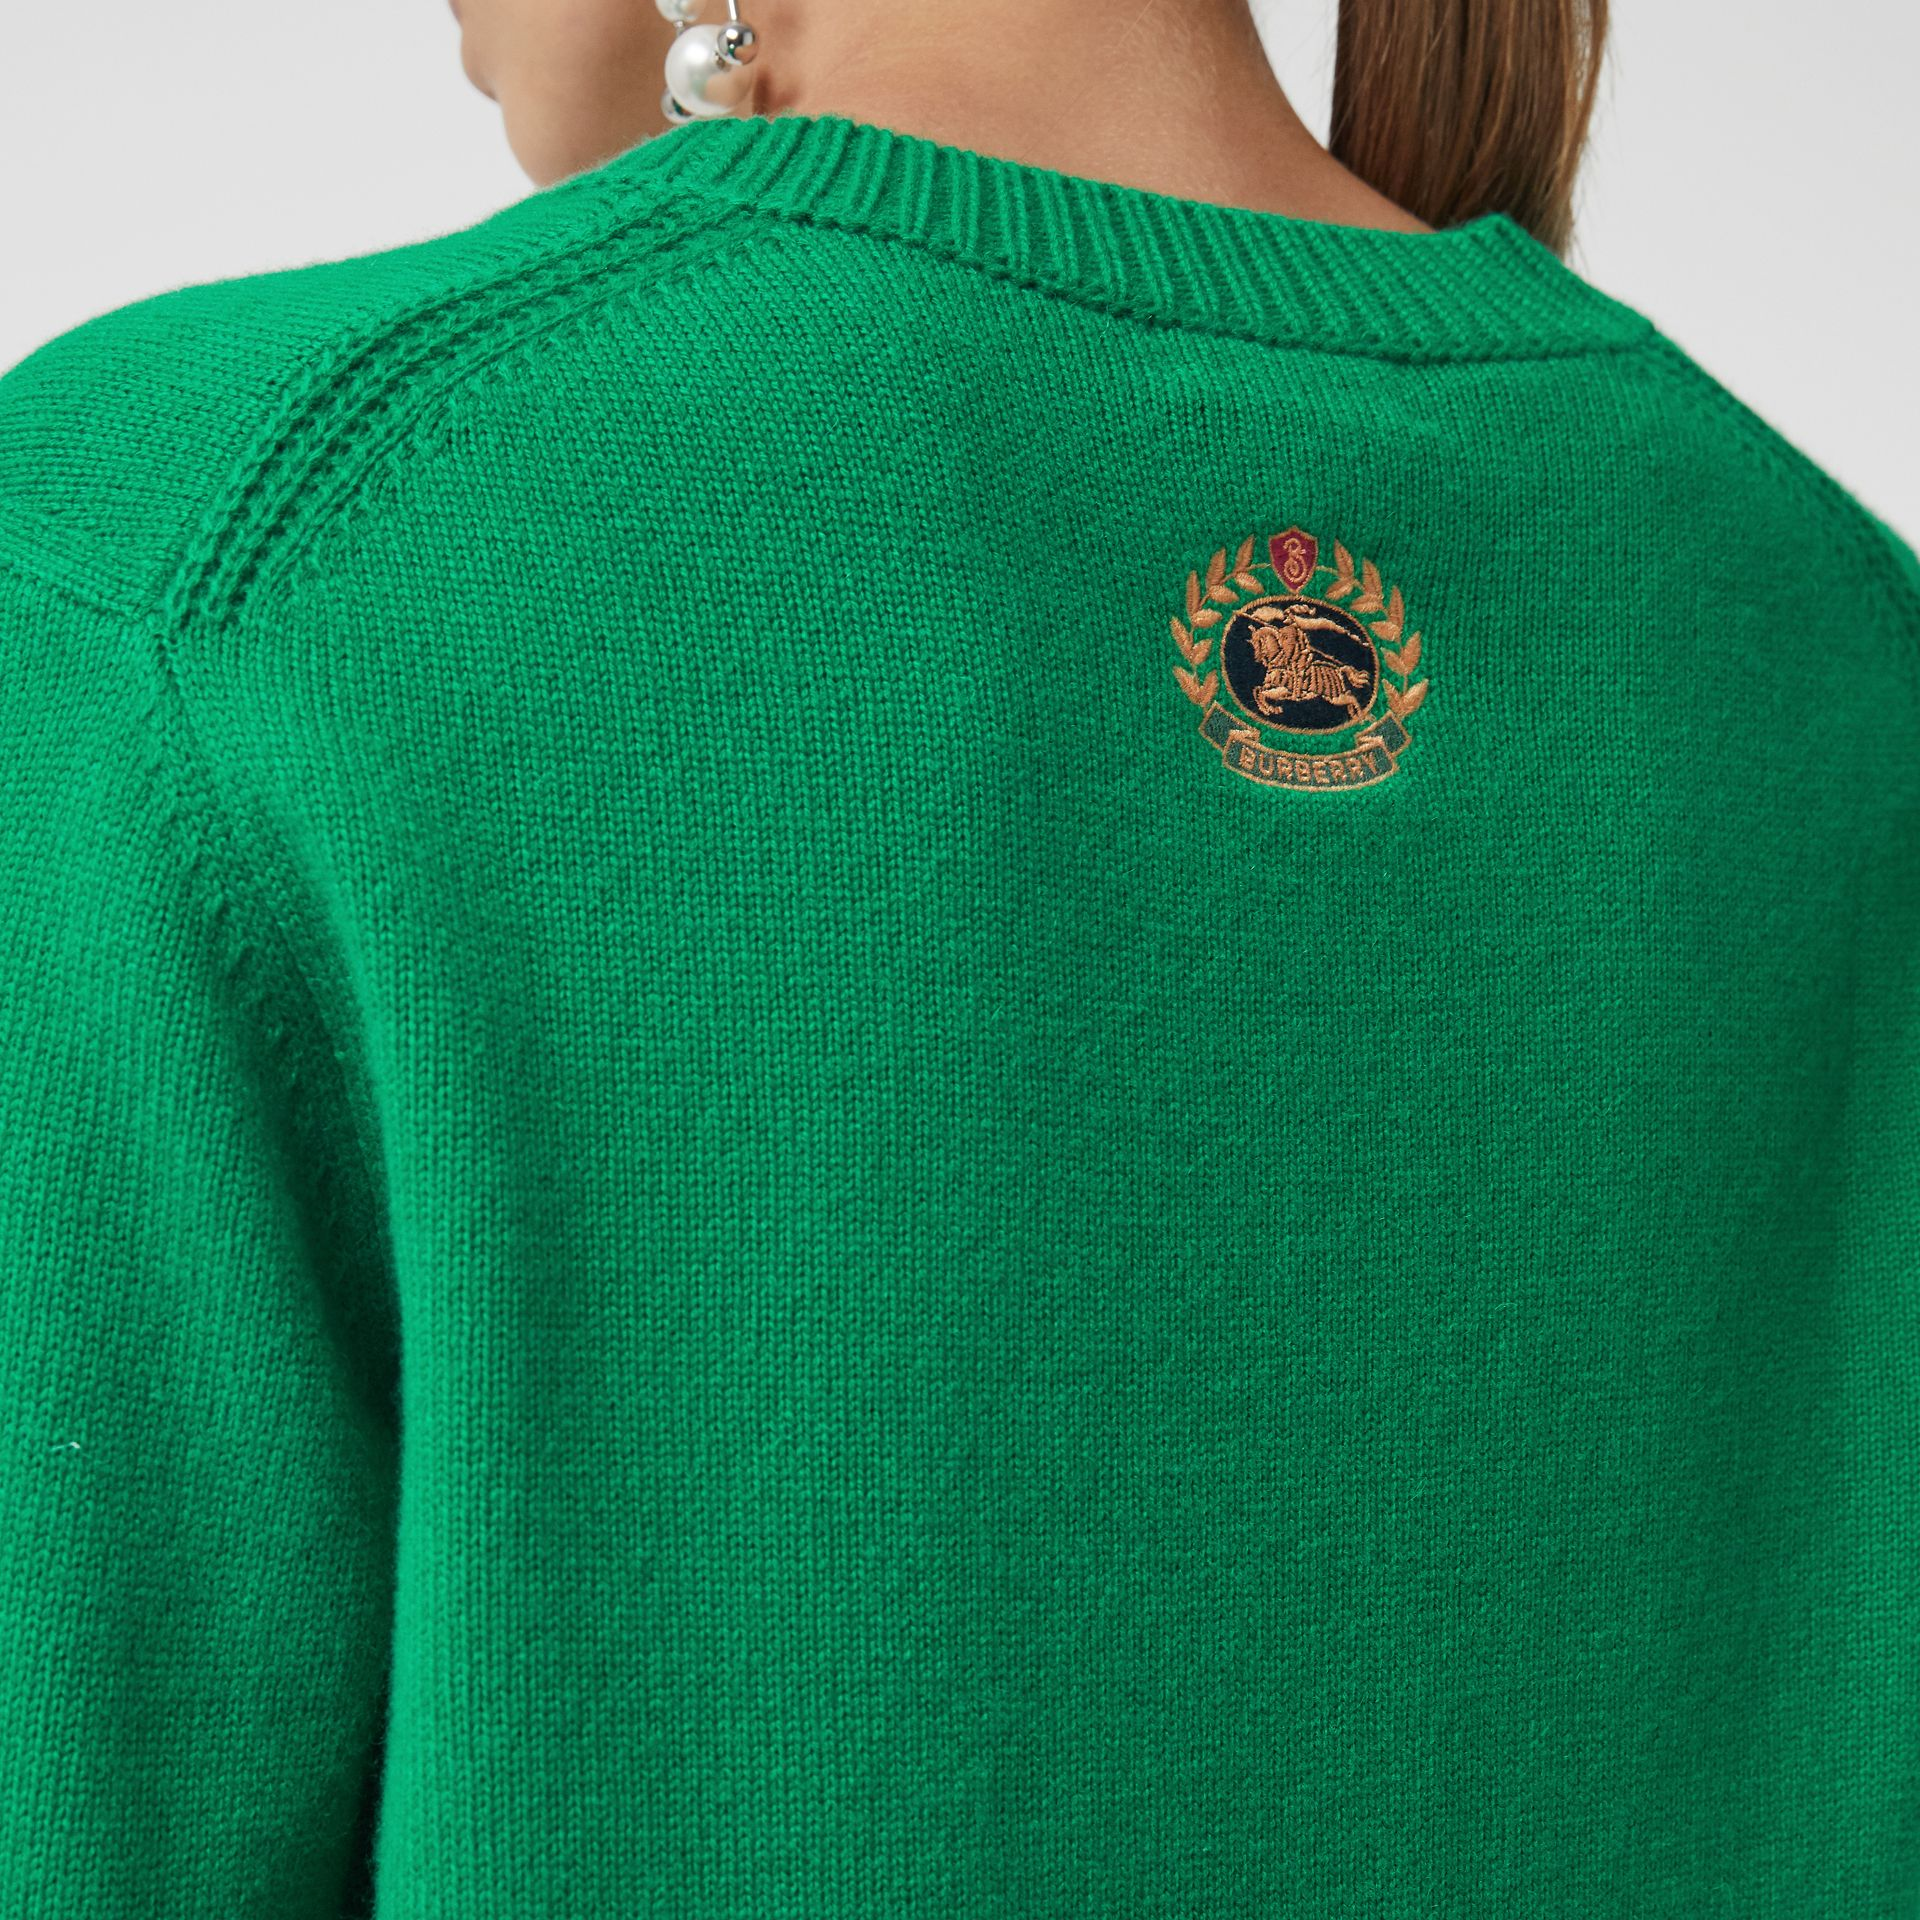 Archive Logo Appliqué Cashmere Sweater in Vibrant Green - Women | Burberry - gallery image 1